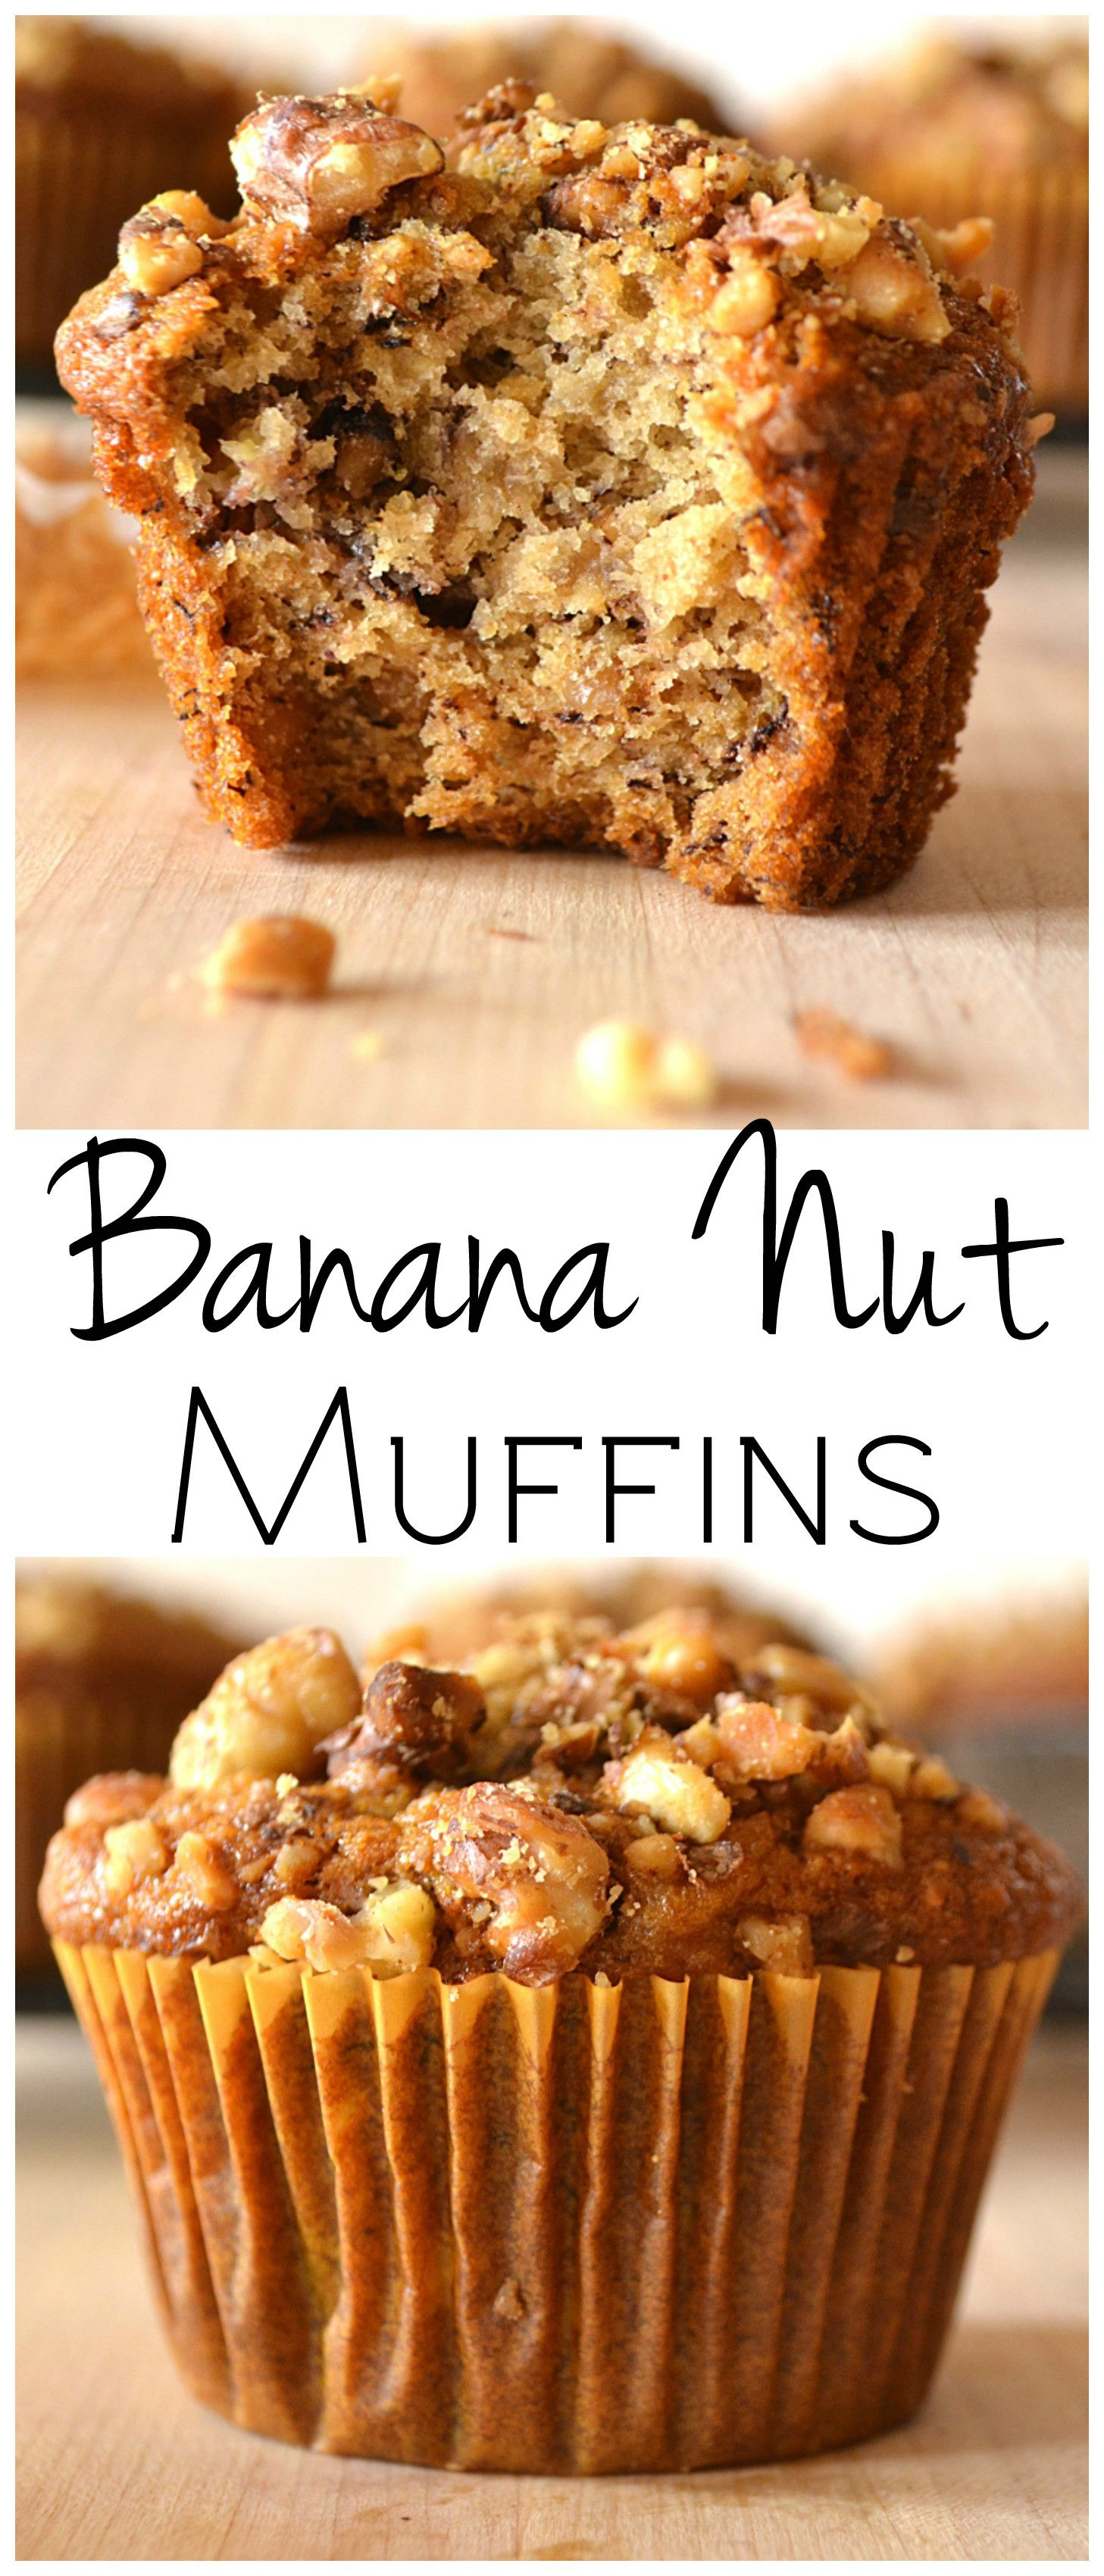 Banana Nut Muffins Recipe Banana Nut Muffins Banana Nut Muffin Recipe Banana Nut Bread